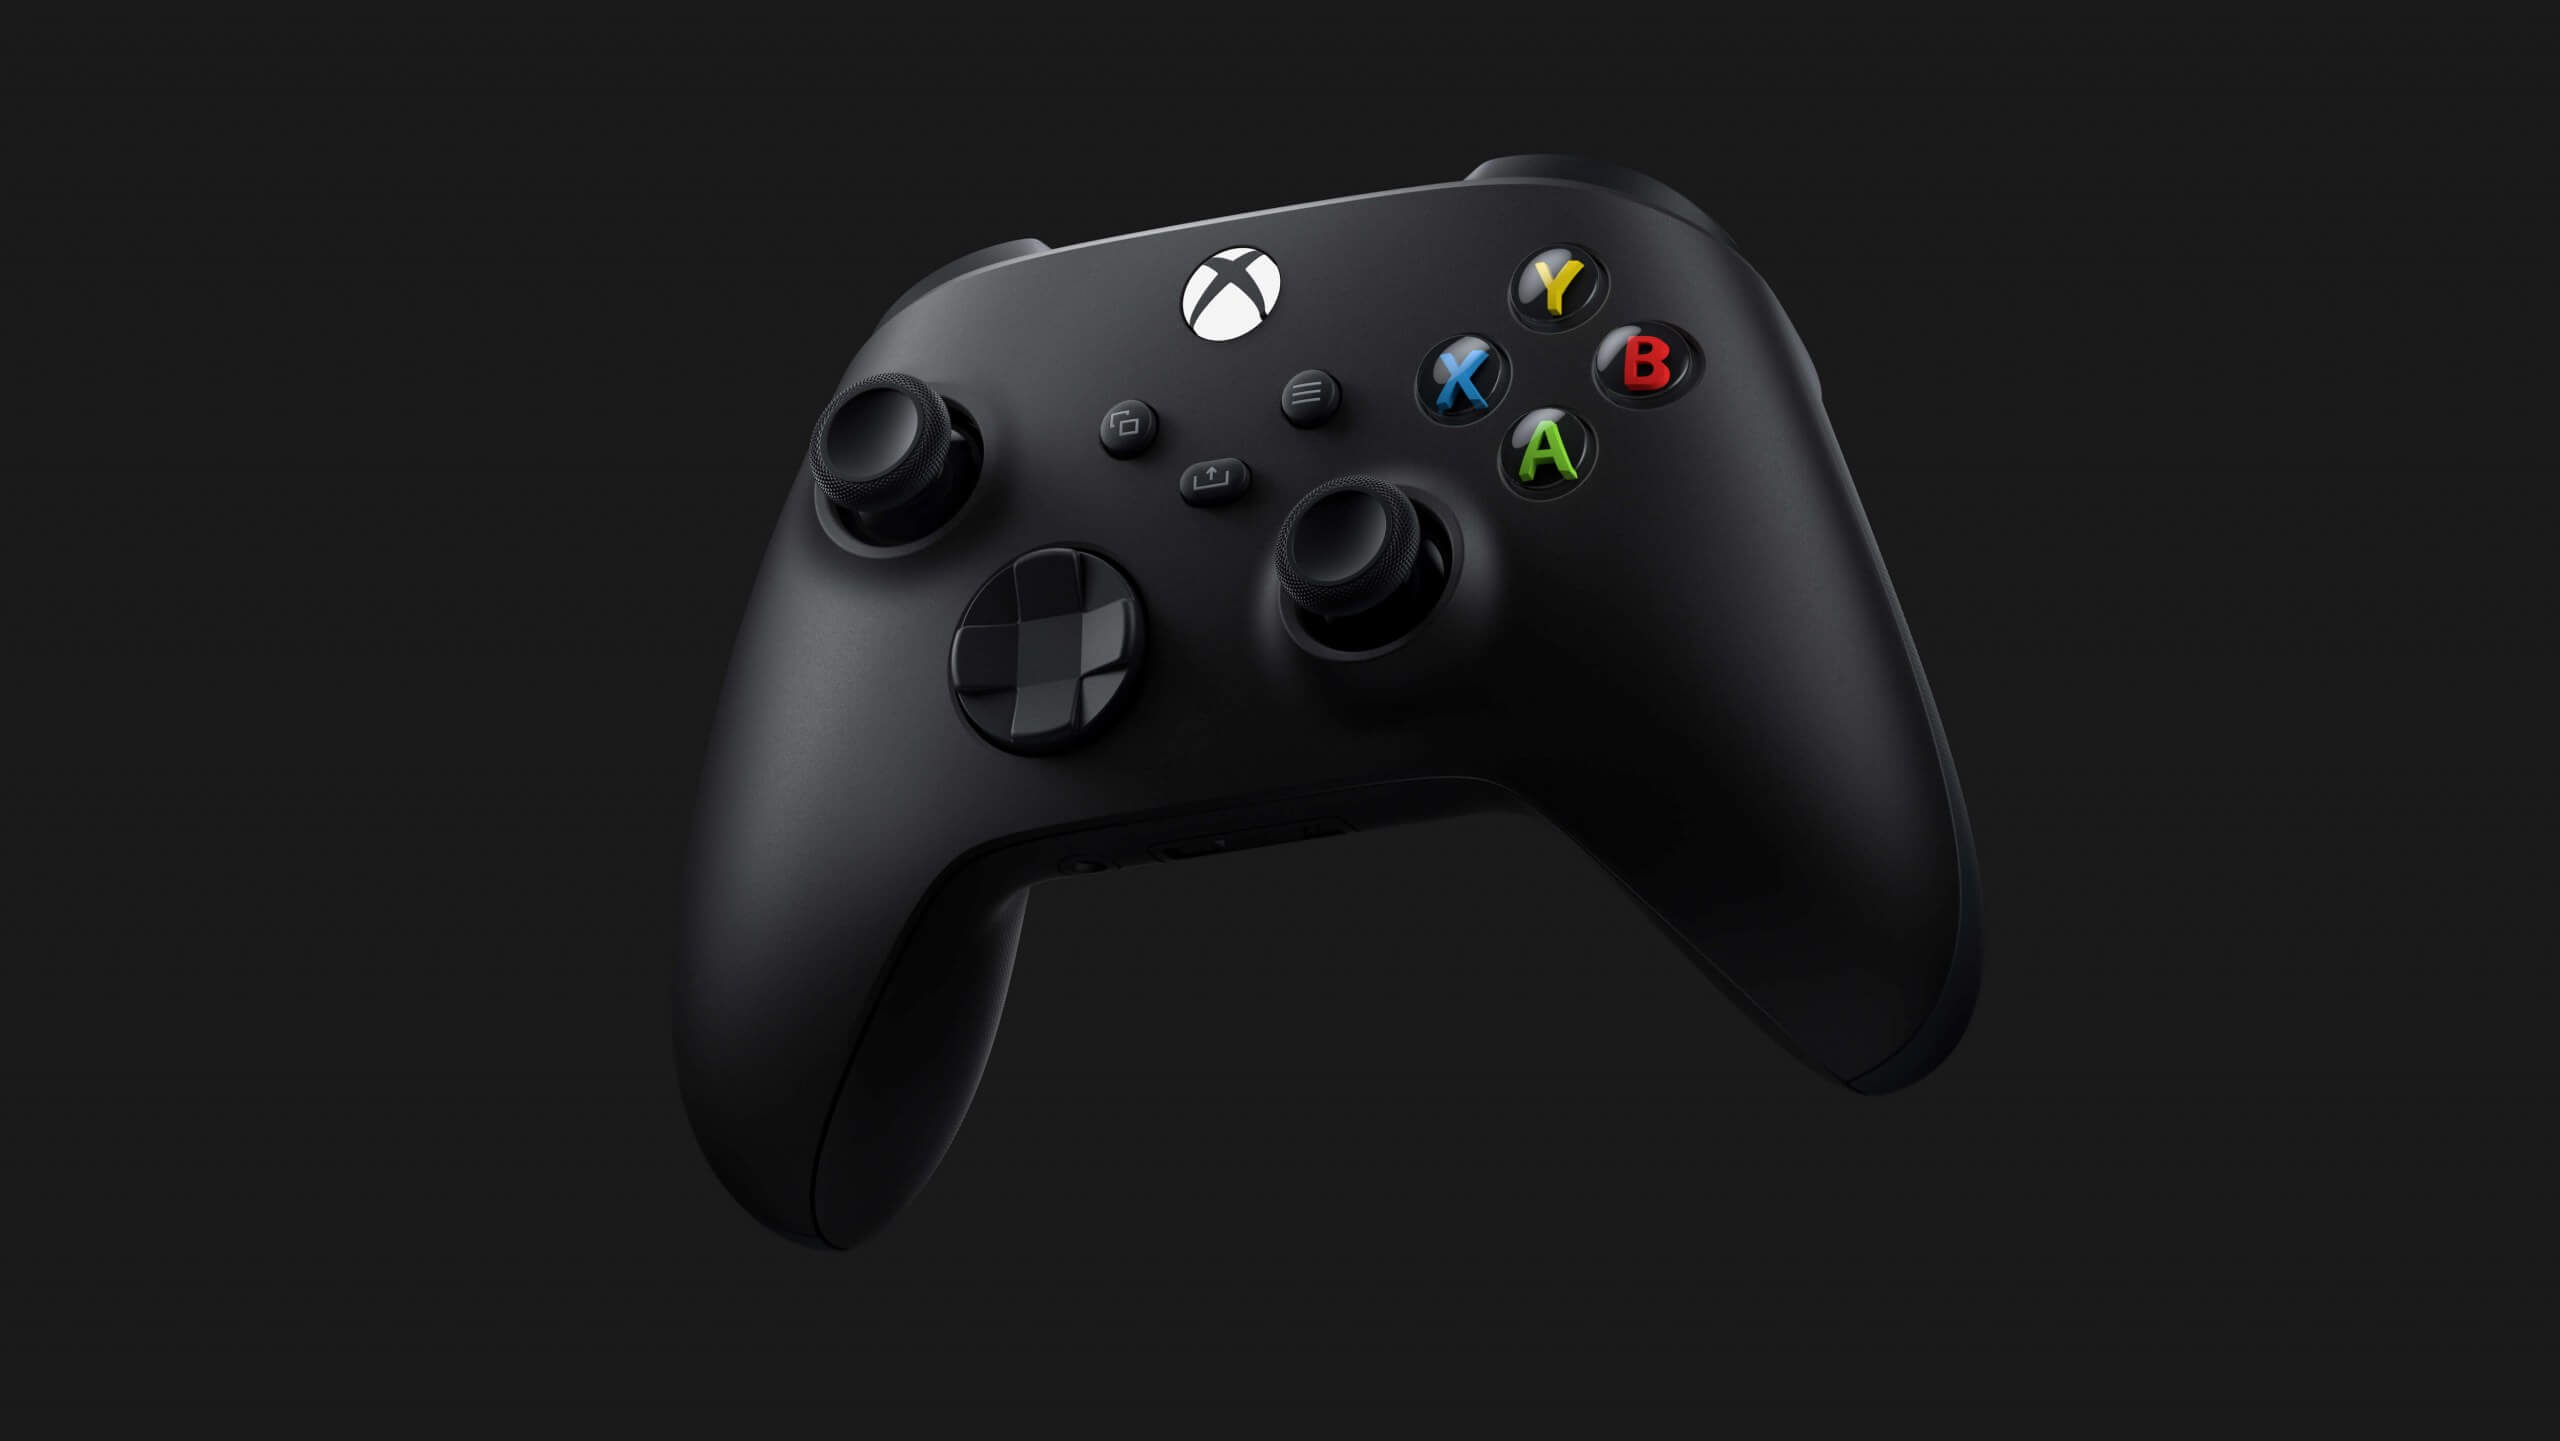 Microsoft showcases new low-latency, cross-compatible Xbox Series X controller